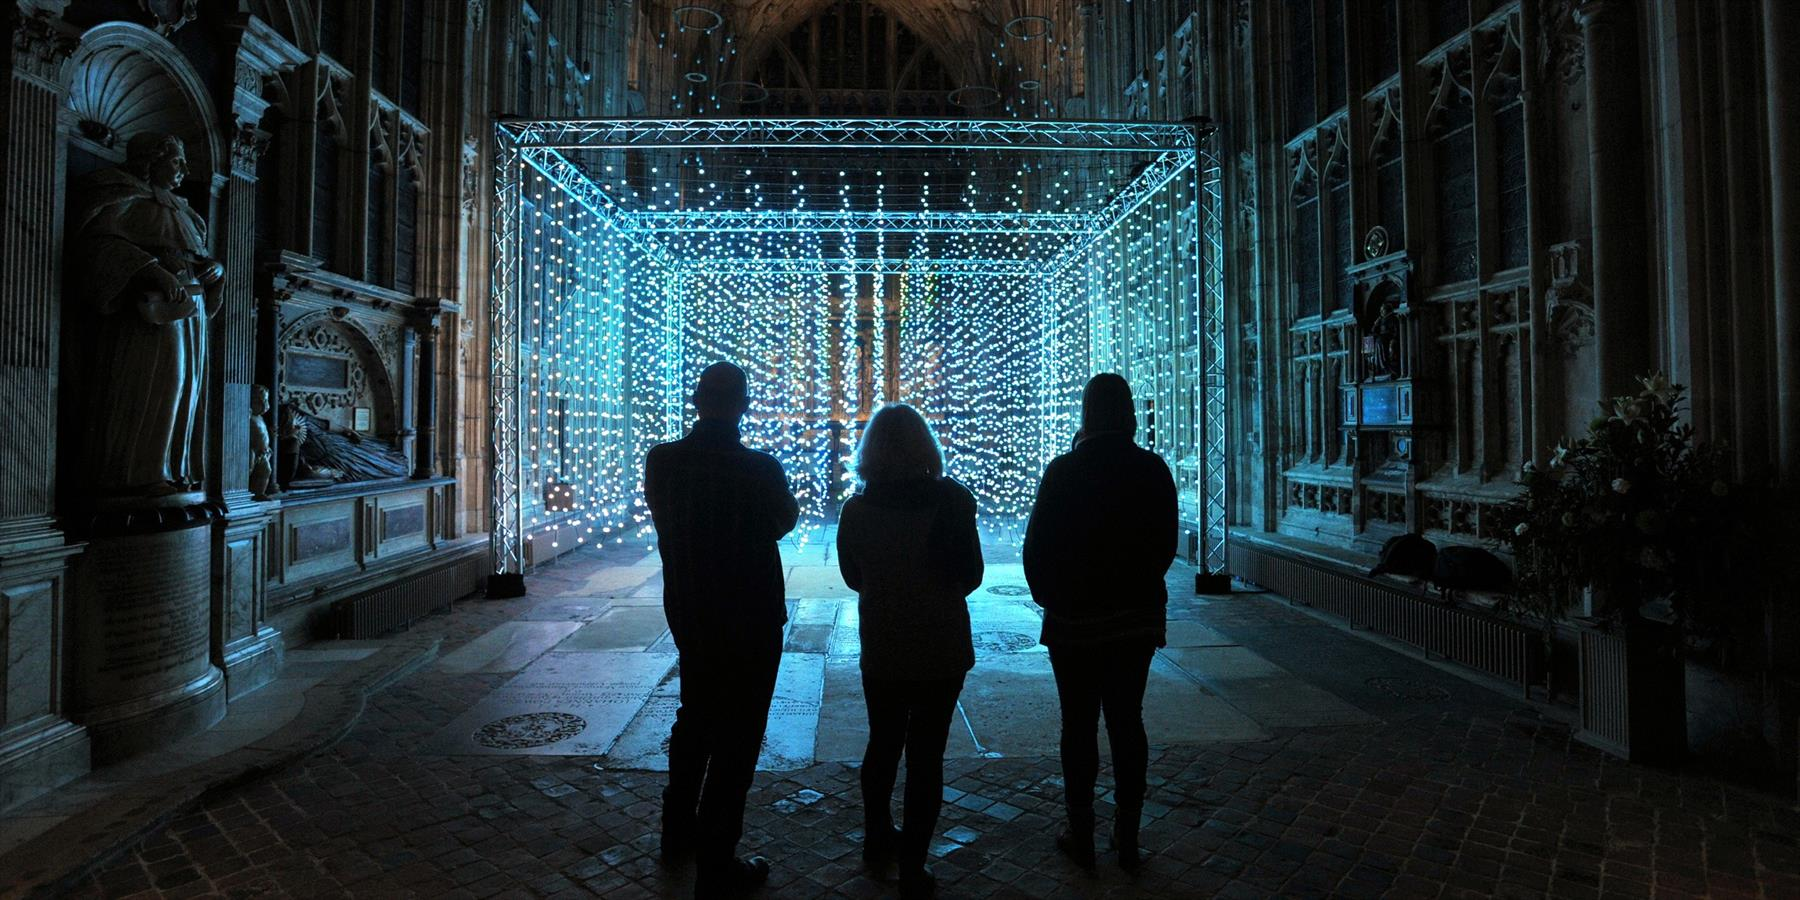 People standing in a cathedral in front of a light installation